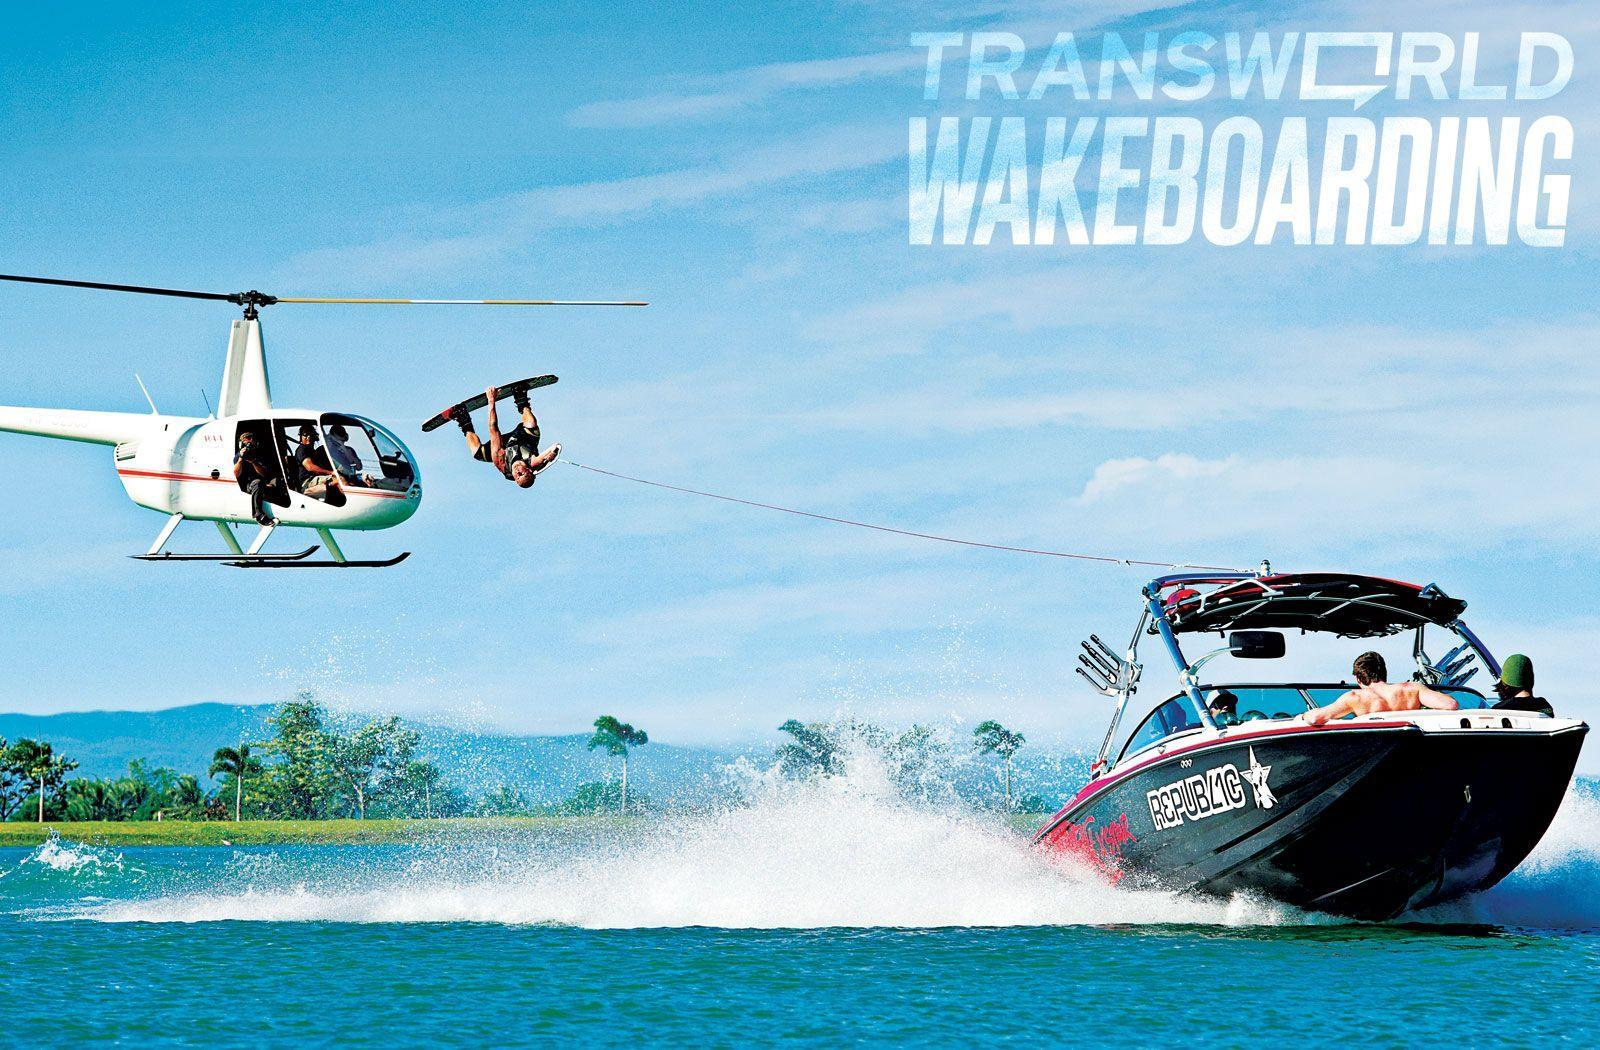 wakeboard wallpapers gallery 73 plus pic wpw108612